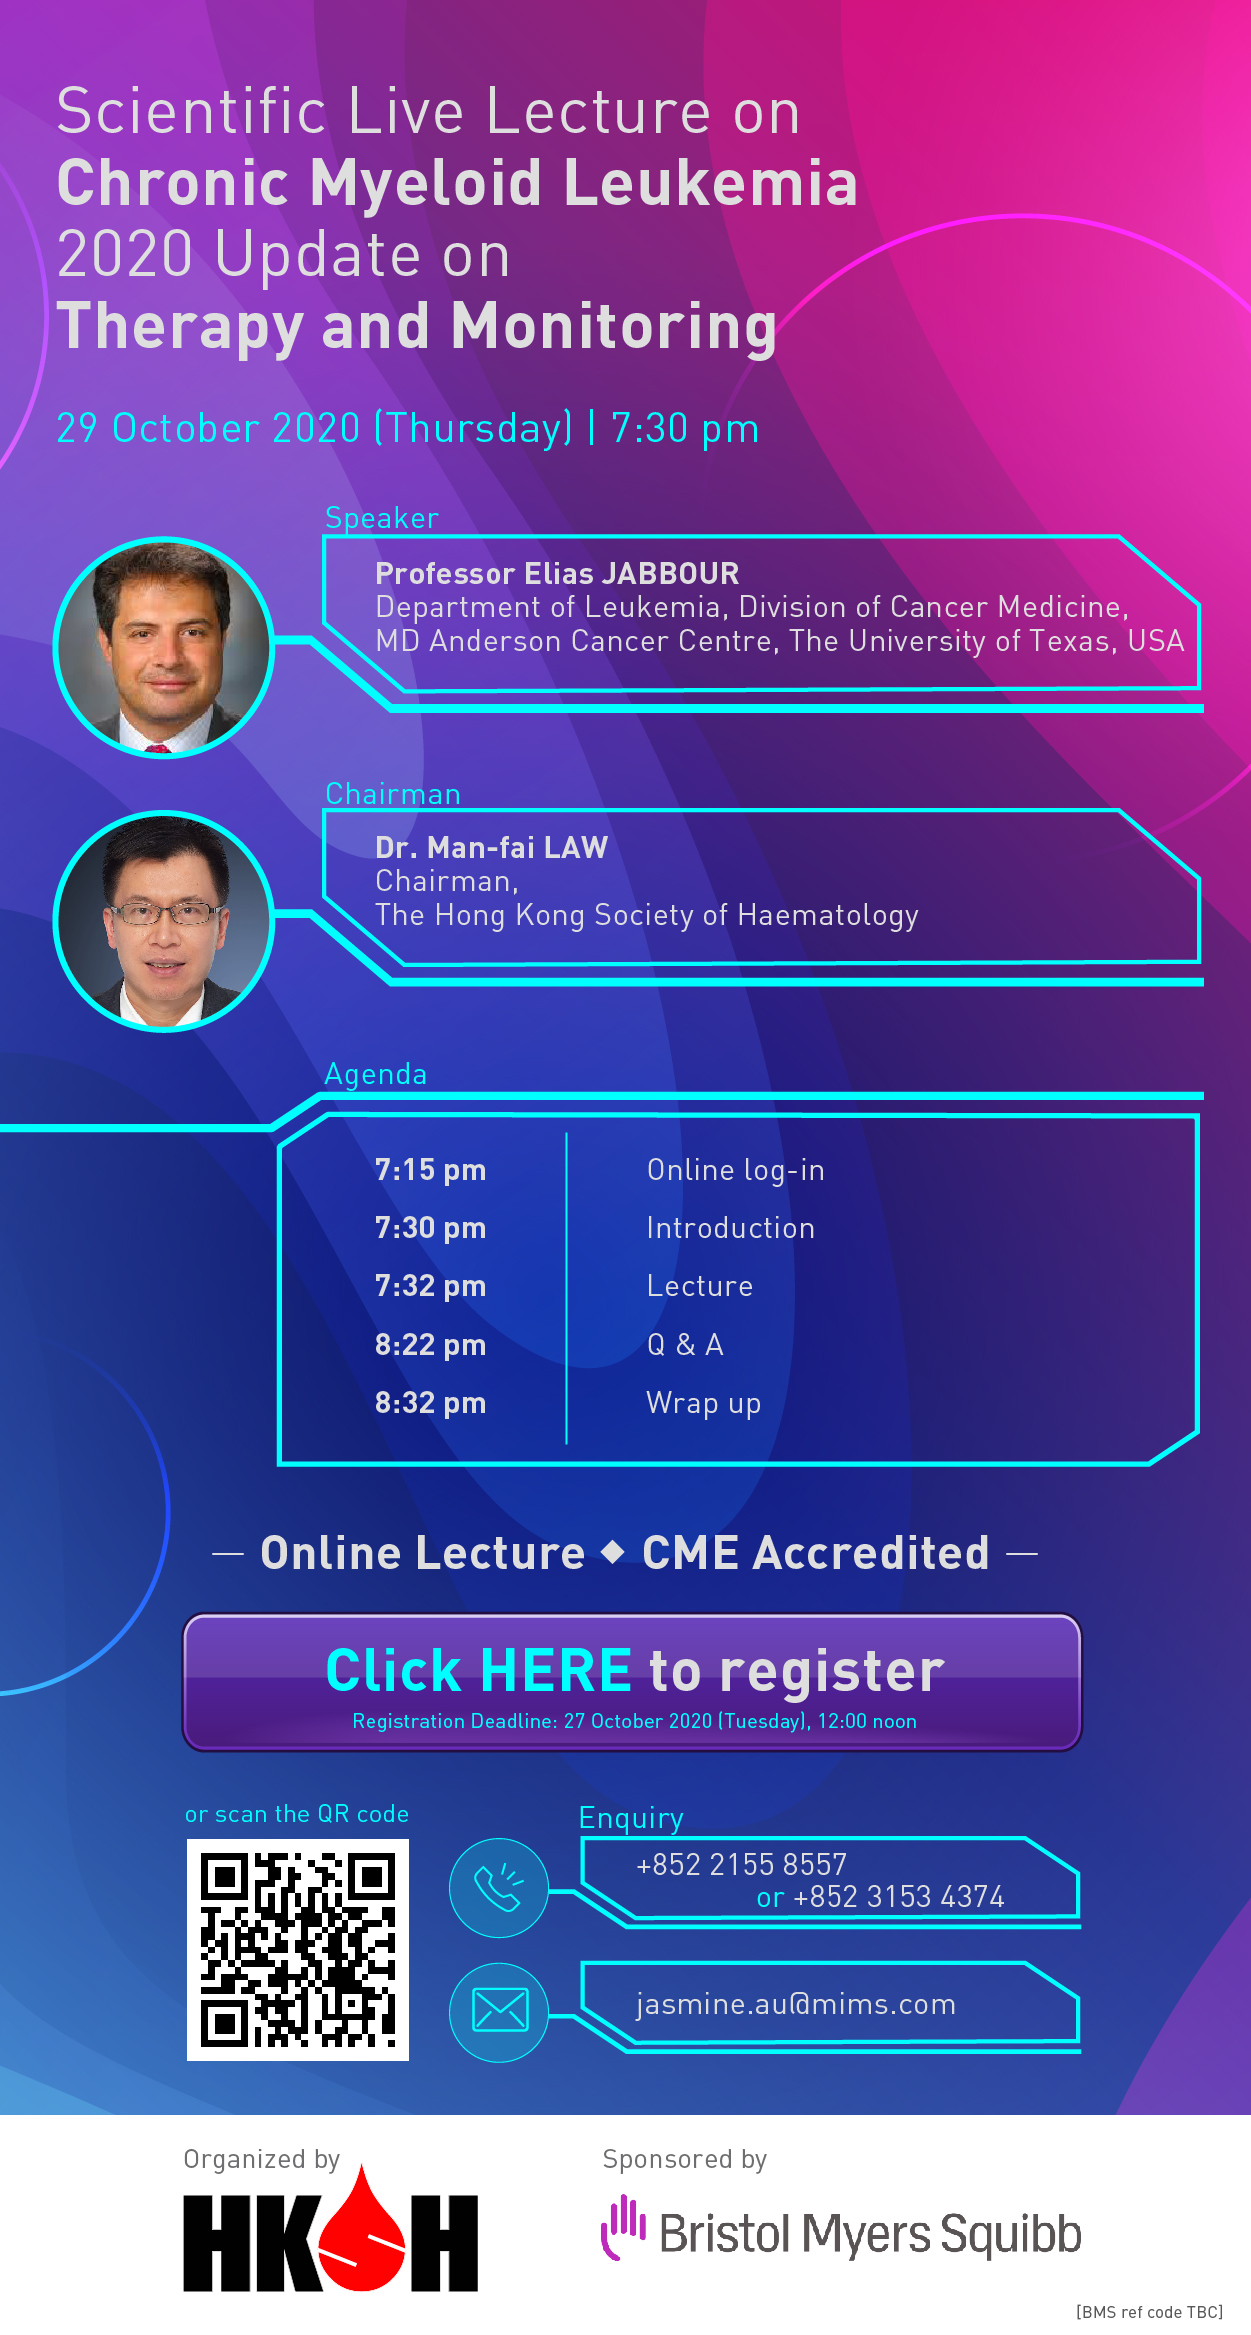 Scientific Live Lecture on Chronic Myeloid Leukemia, 29 October